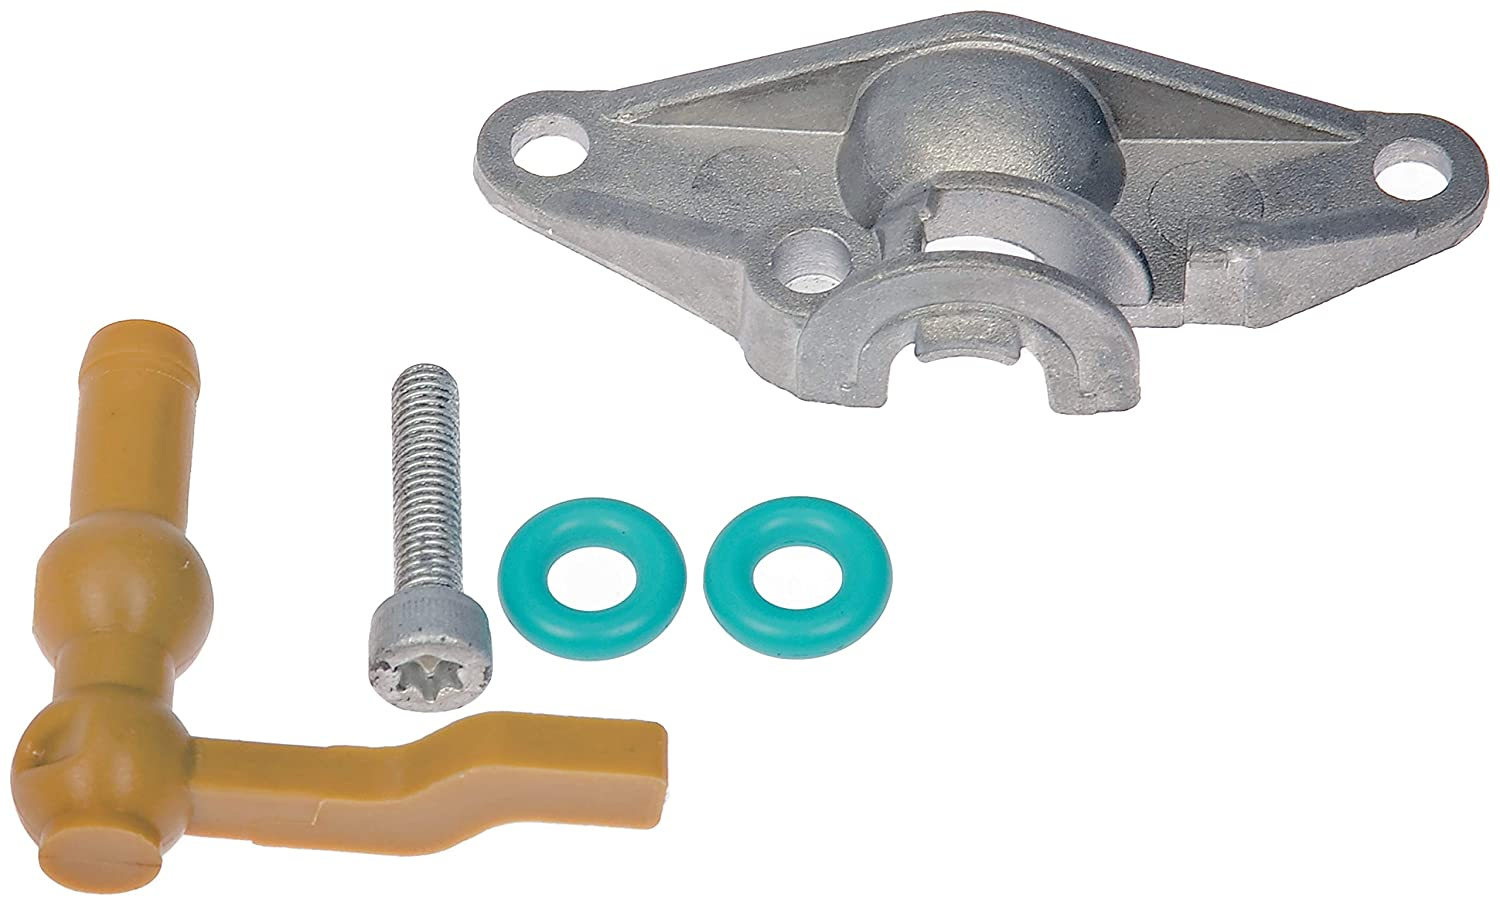 Dorman 904-496 Horizontal Fuel Conditioning Module Drain Valve for Select Ford Models